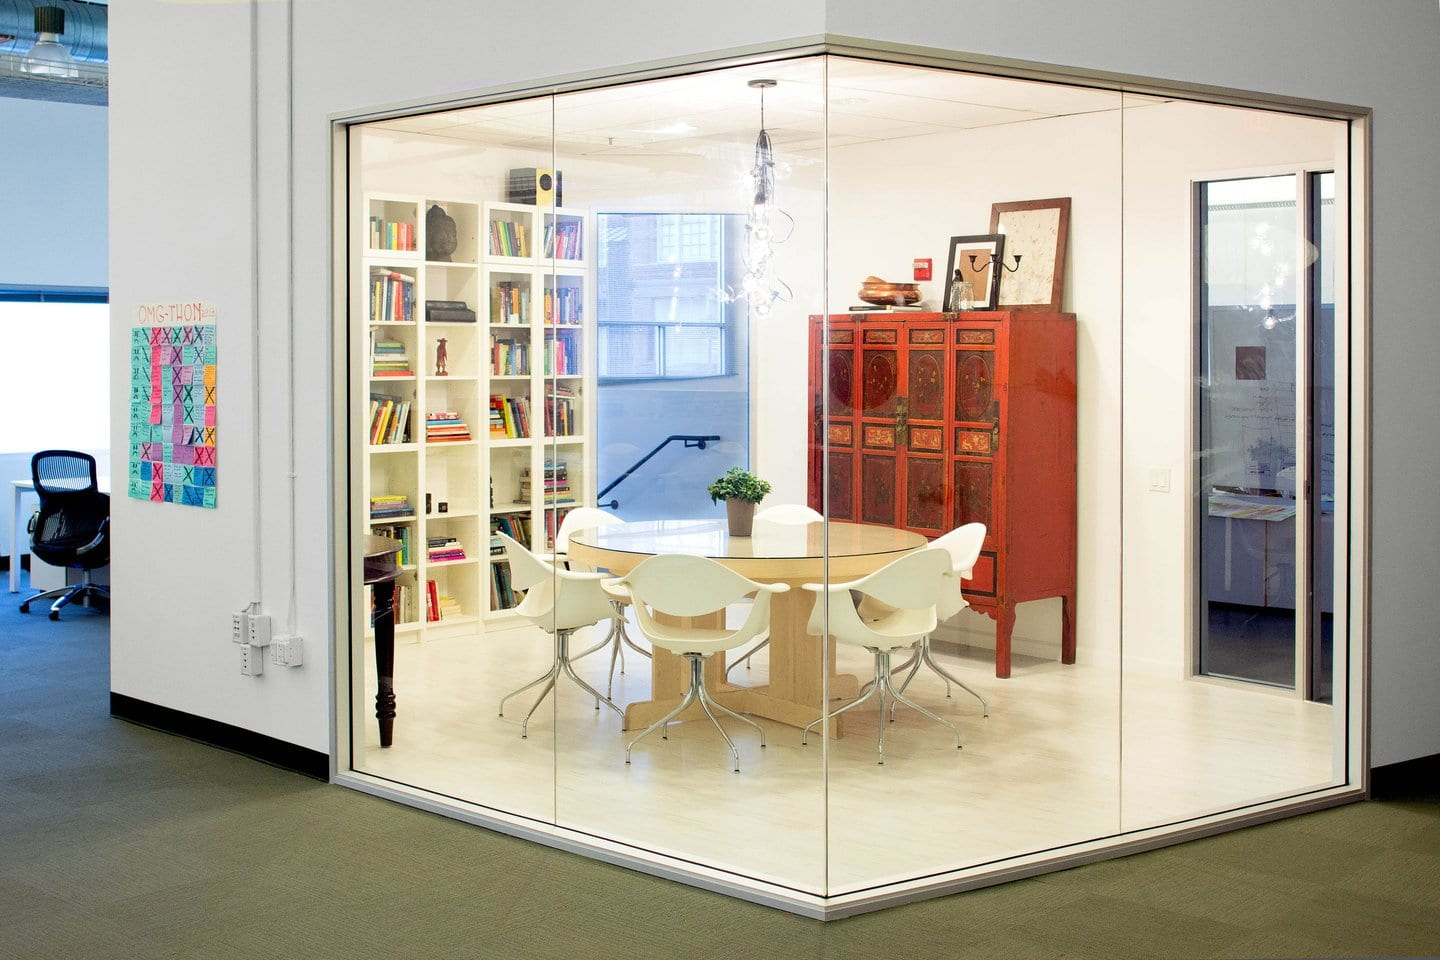 Airbnb office interiors cool office design meeting room for Cool office designs